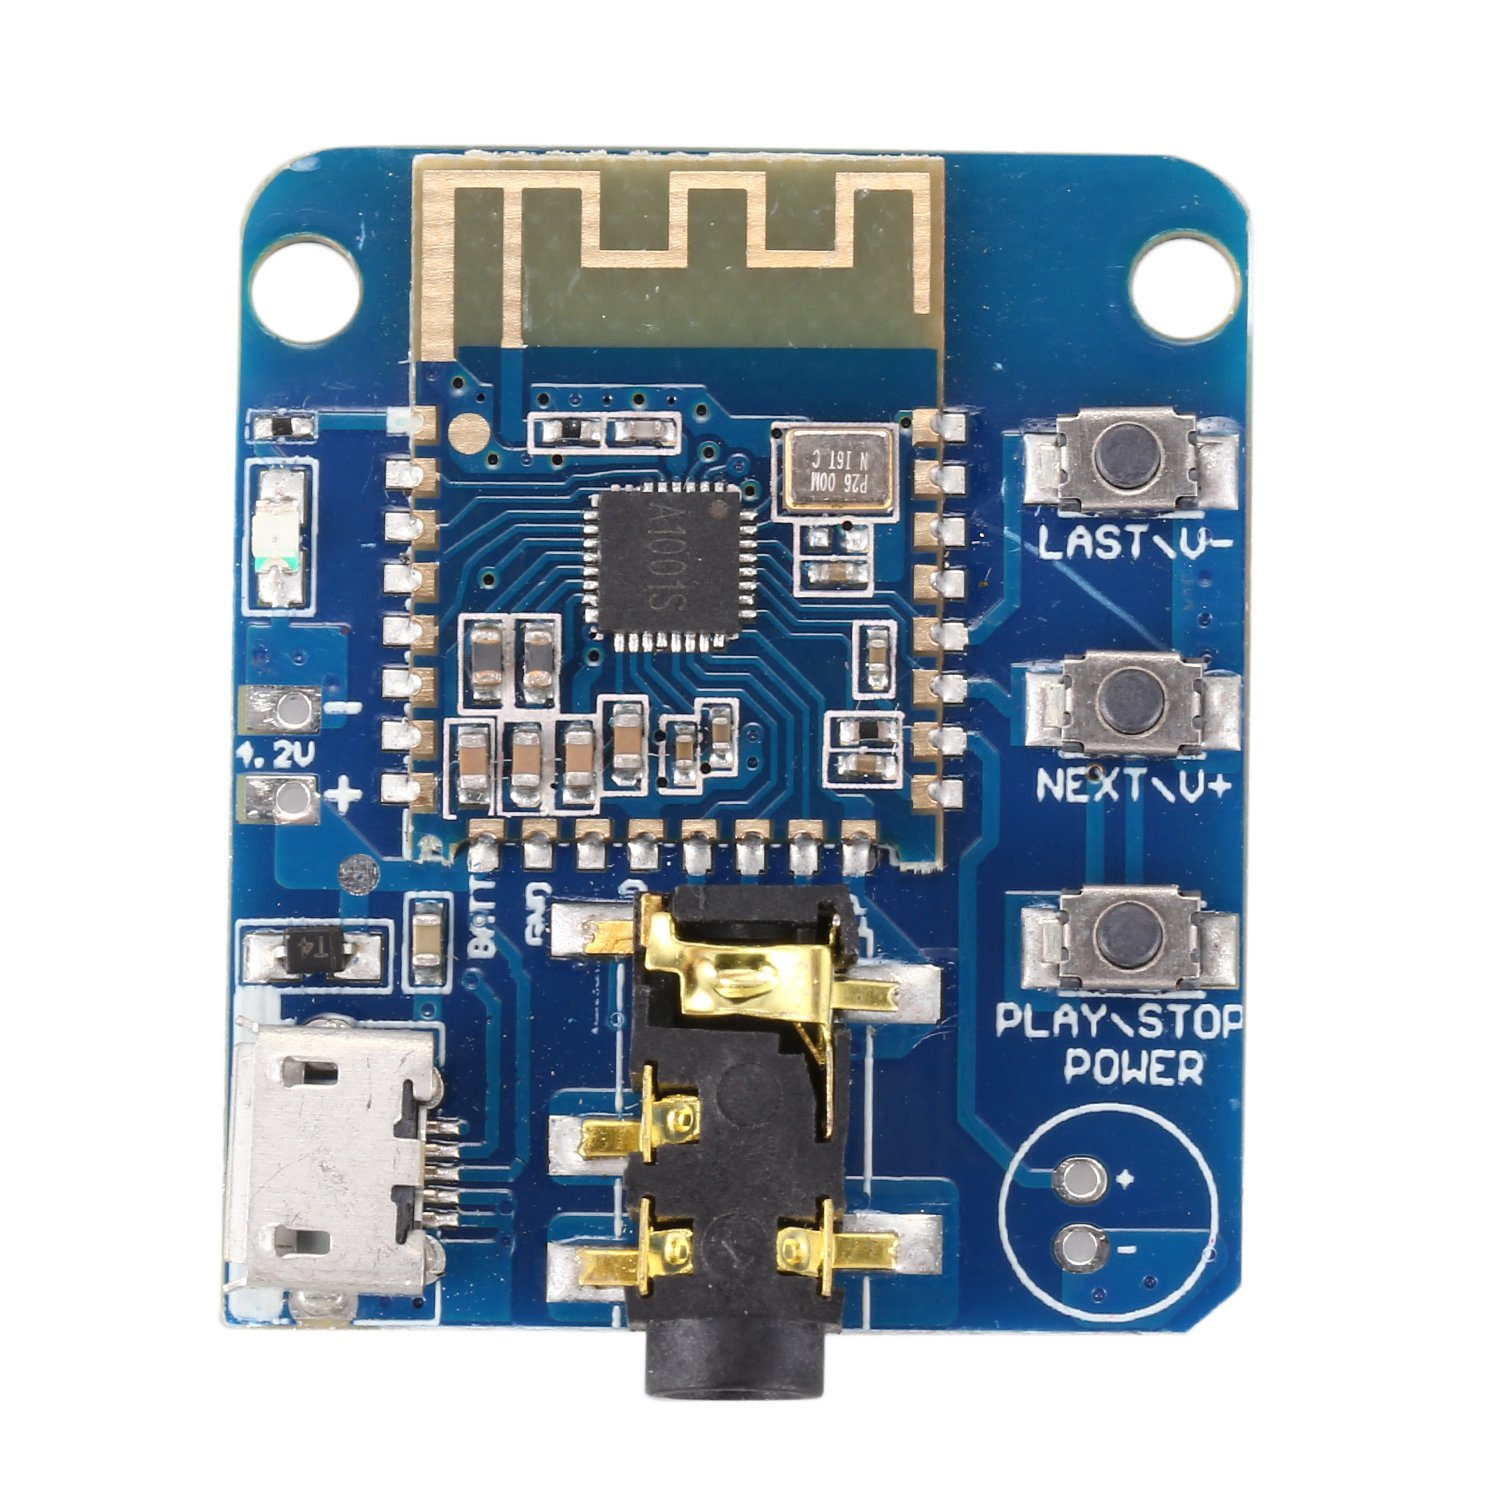 Funkadapter Tragbares Audio & Video Jdy-64 Verlustfreie Bluetooth Audio Modul Audio Kopfhörer Power Board Änderung 4,2 High Fidelity Gute Begleiter FüR Kinder Sowie Erwachsene